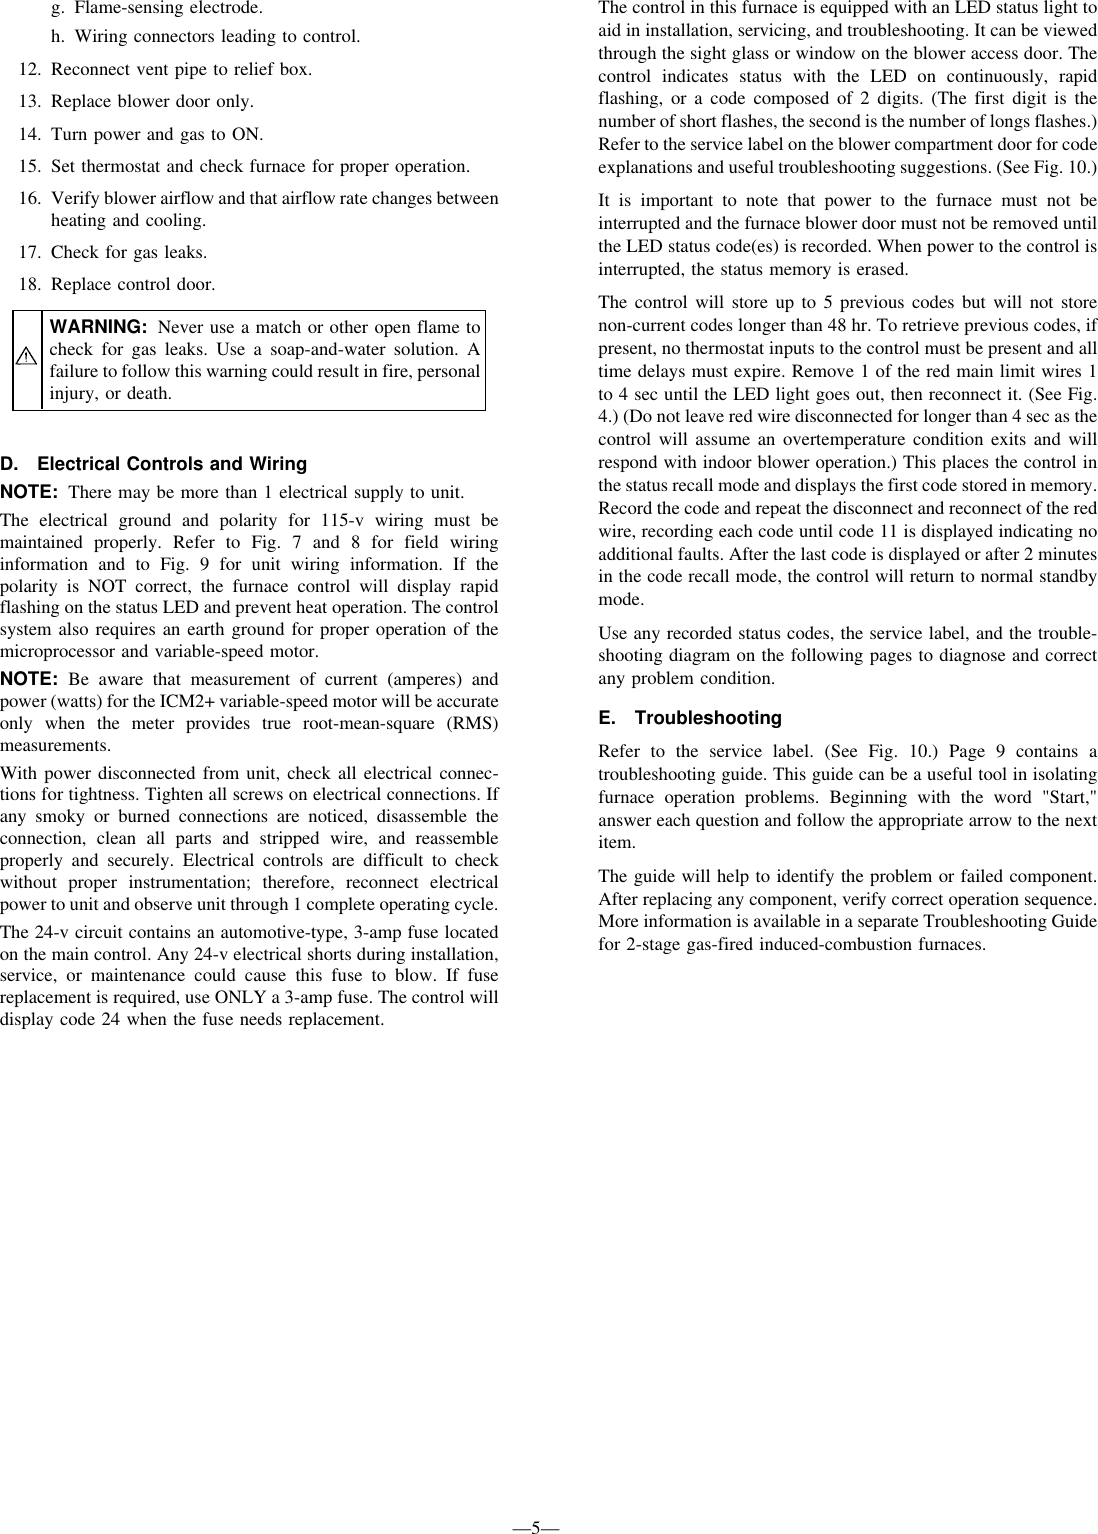 Bryant Induced Combustion 333bav Users Manual Humidifier Wiring Diagram Page 5 Of 12